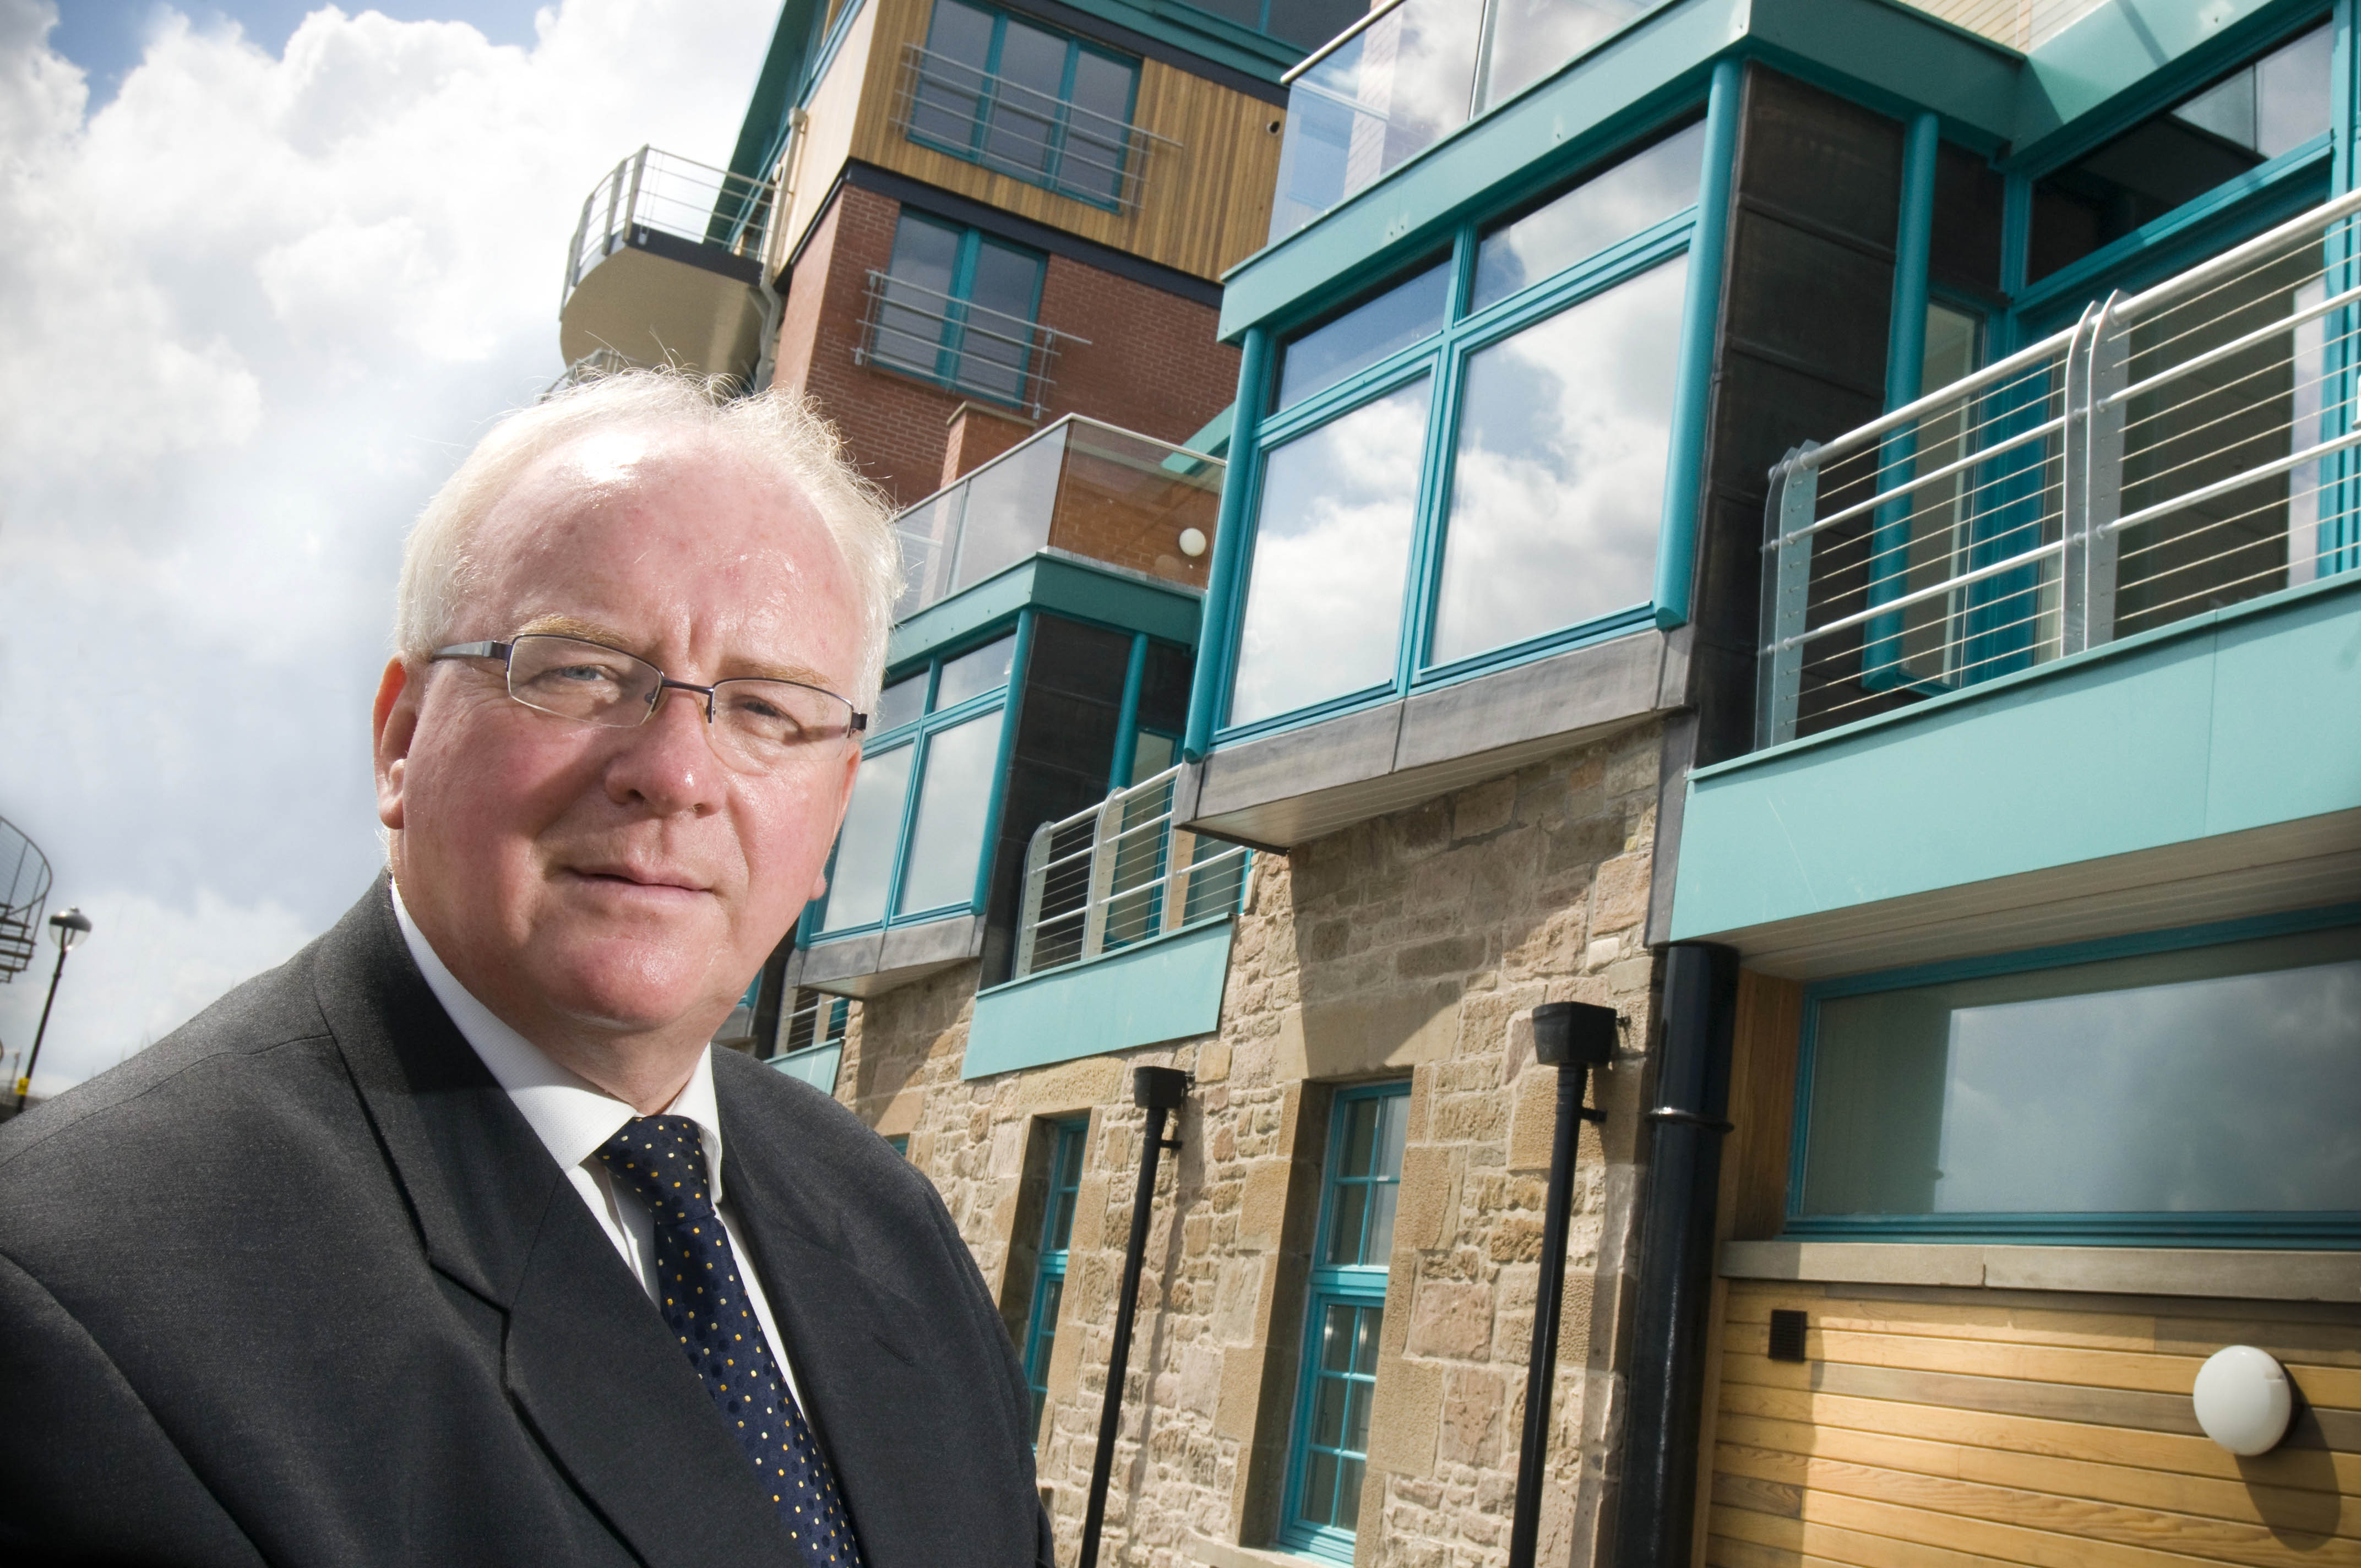 Housebuilding Growth in Tayside and Perthshire Property Market